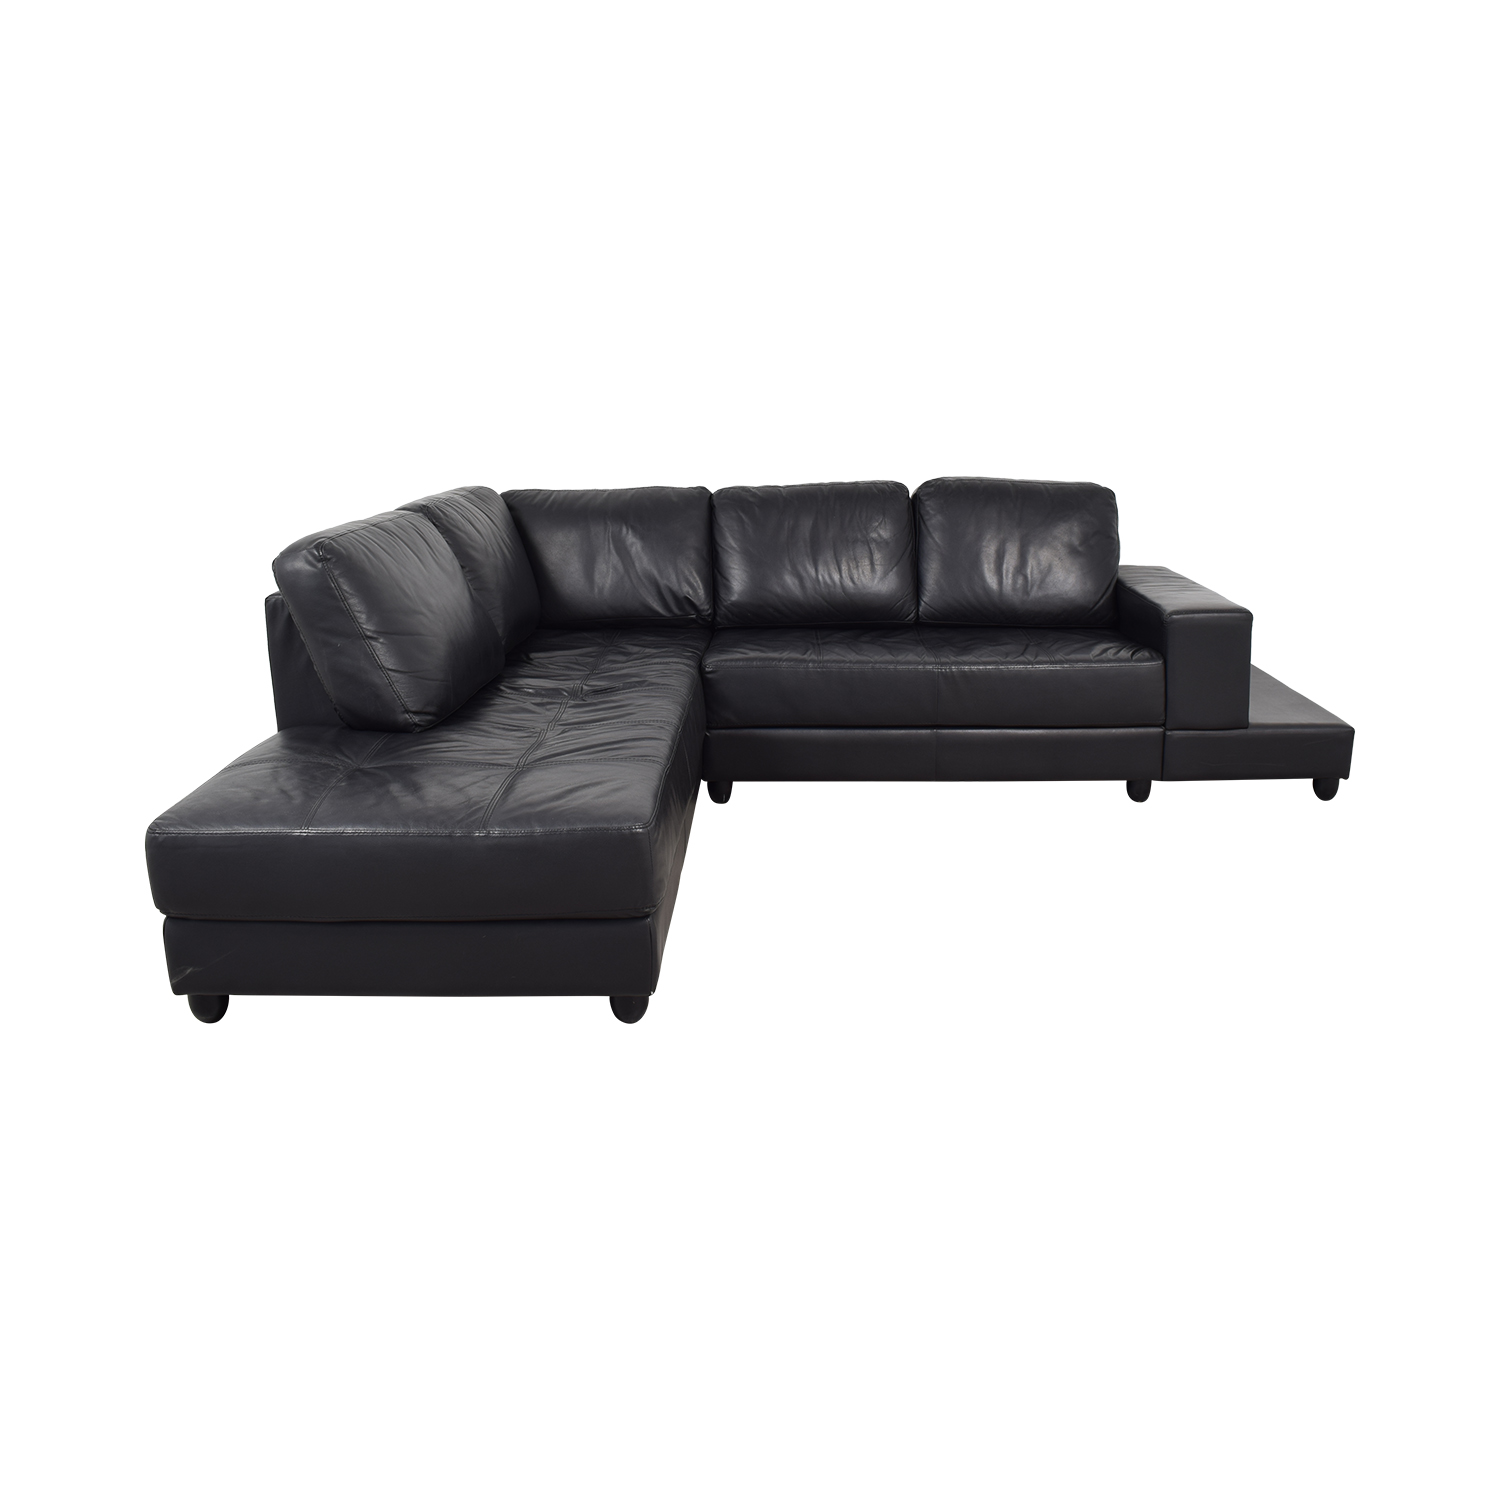 Coaster Coaster Black Sectional dimensions